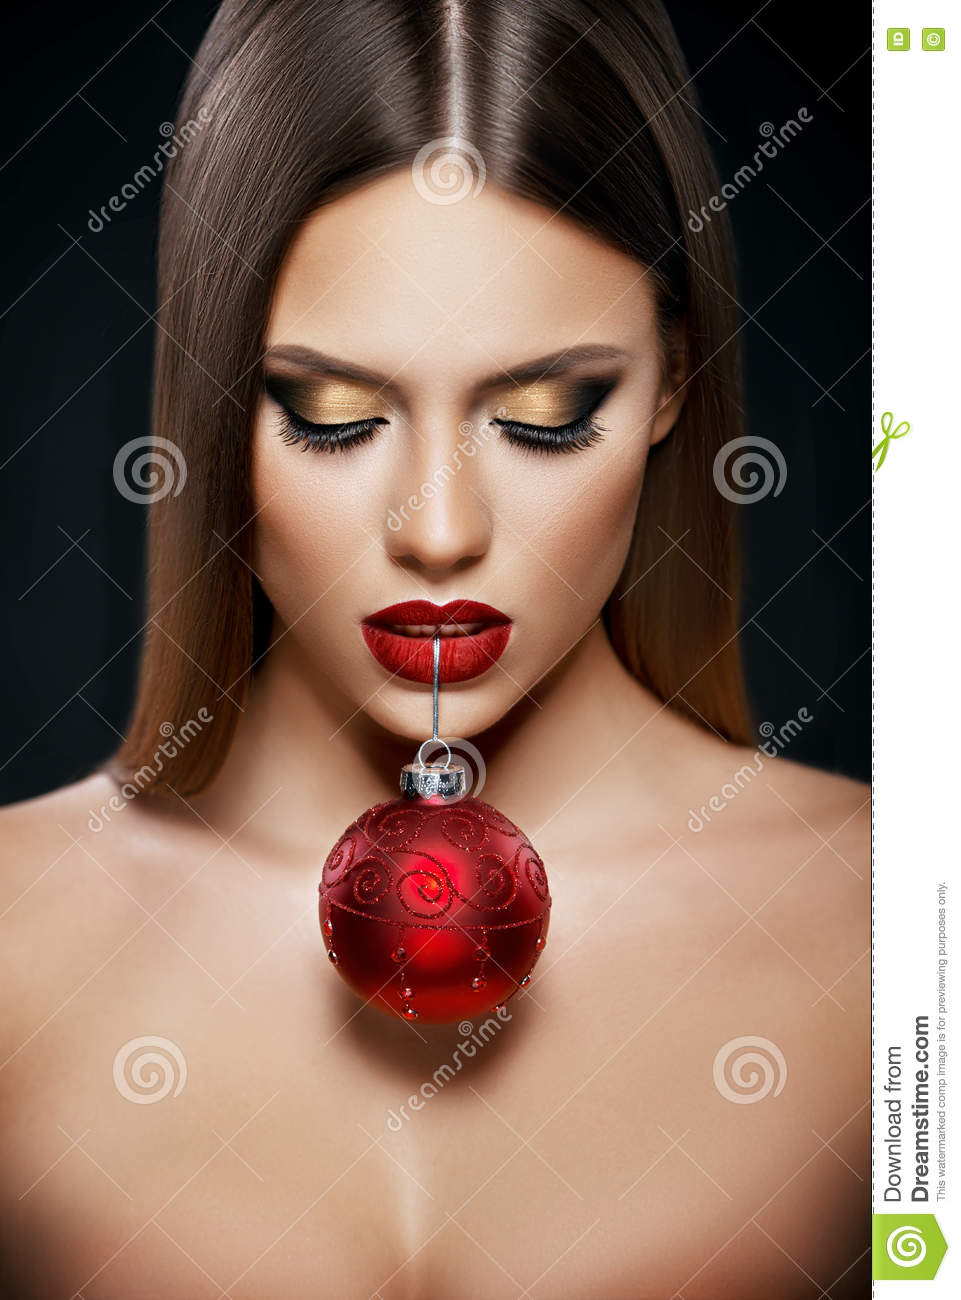 Beautiful woman holding a Christmas ornament with teeth over dark background